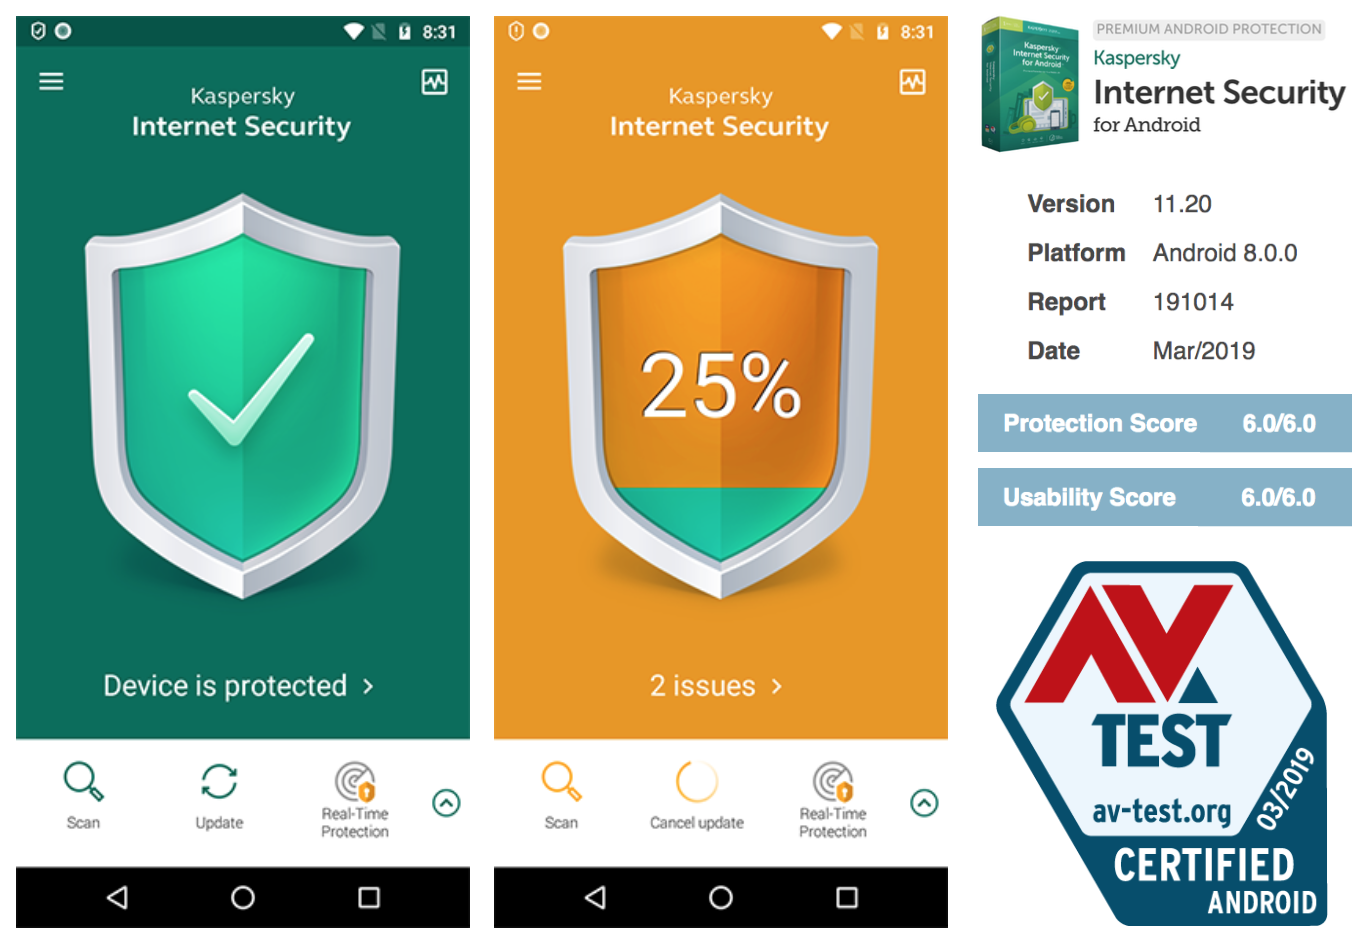 Kaspersky-Internet-Security-for-Android-AV-TEST-certificate